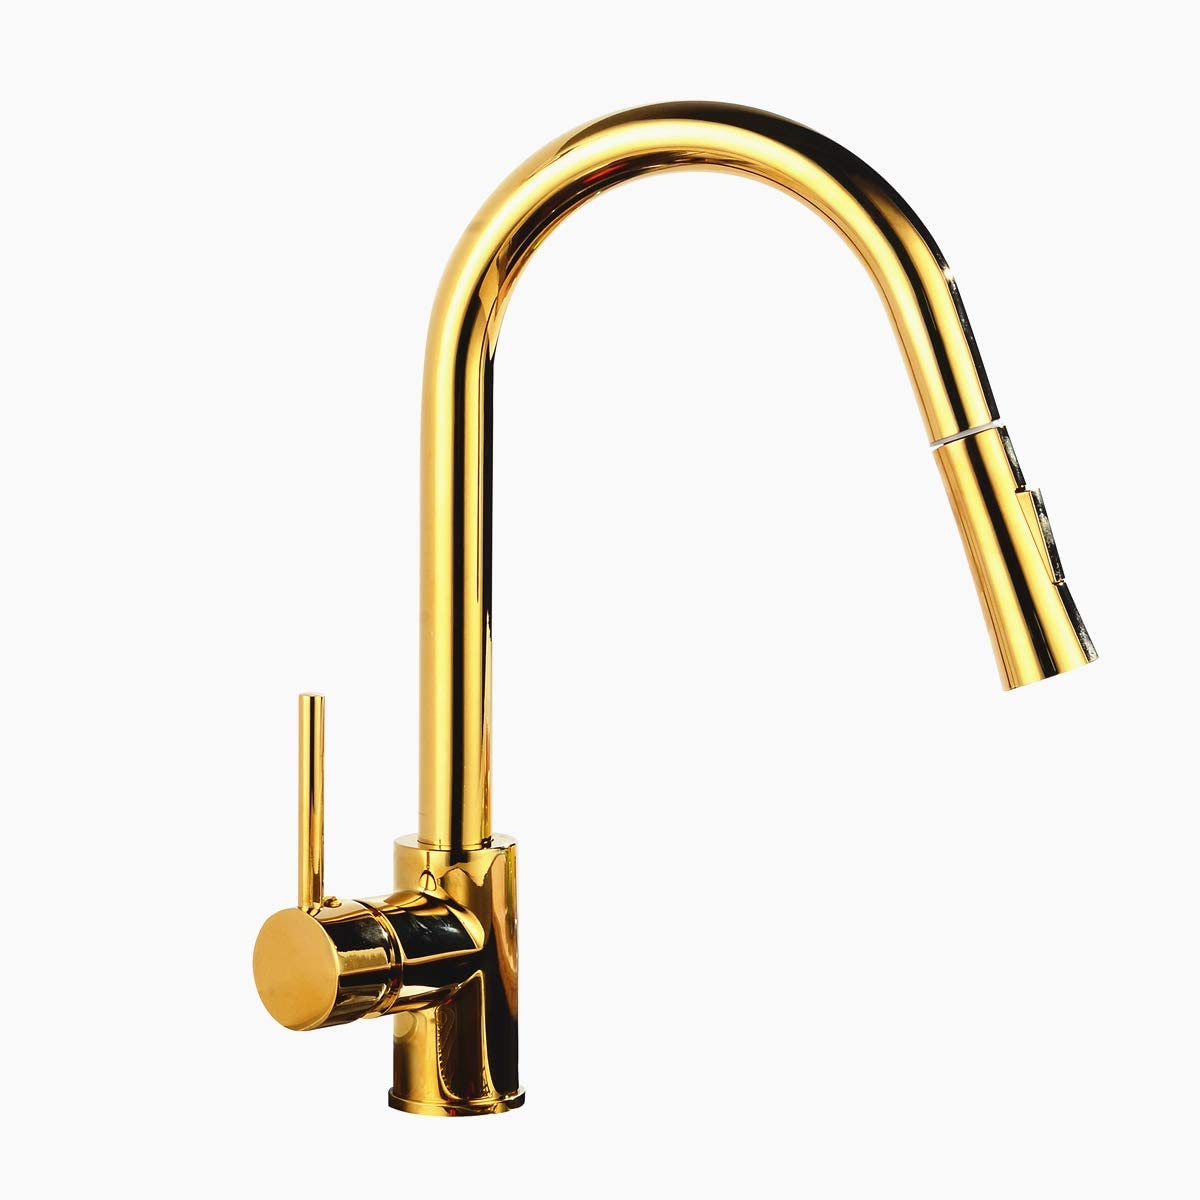 YUELIFE Faucet Kitchen Brass Single Handle Kitchen Sink Faucet with Pull Out Sprayer MY-KF016,Gold